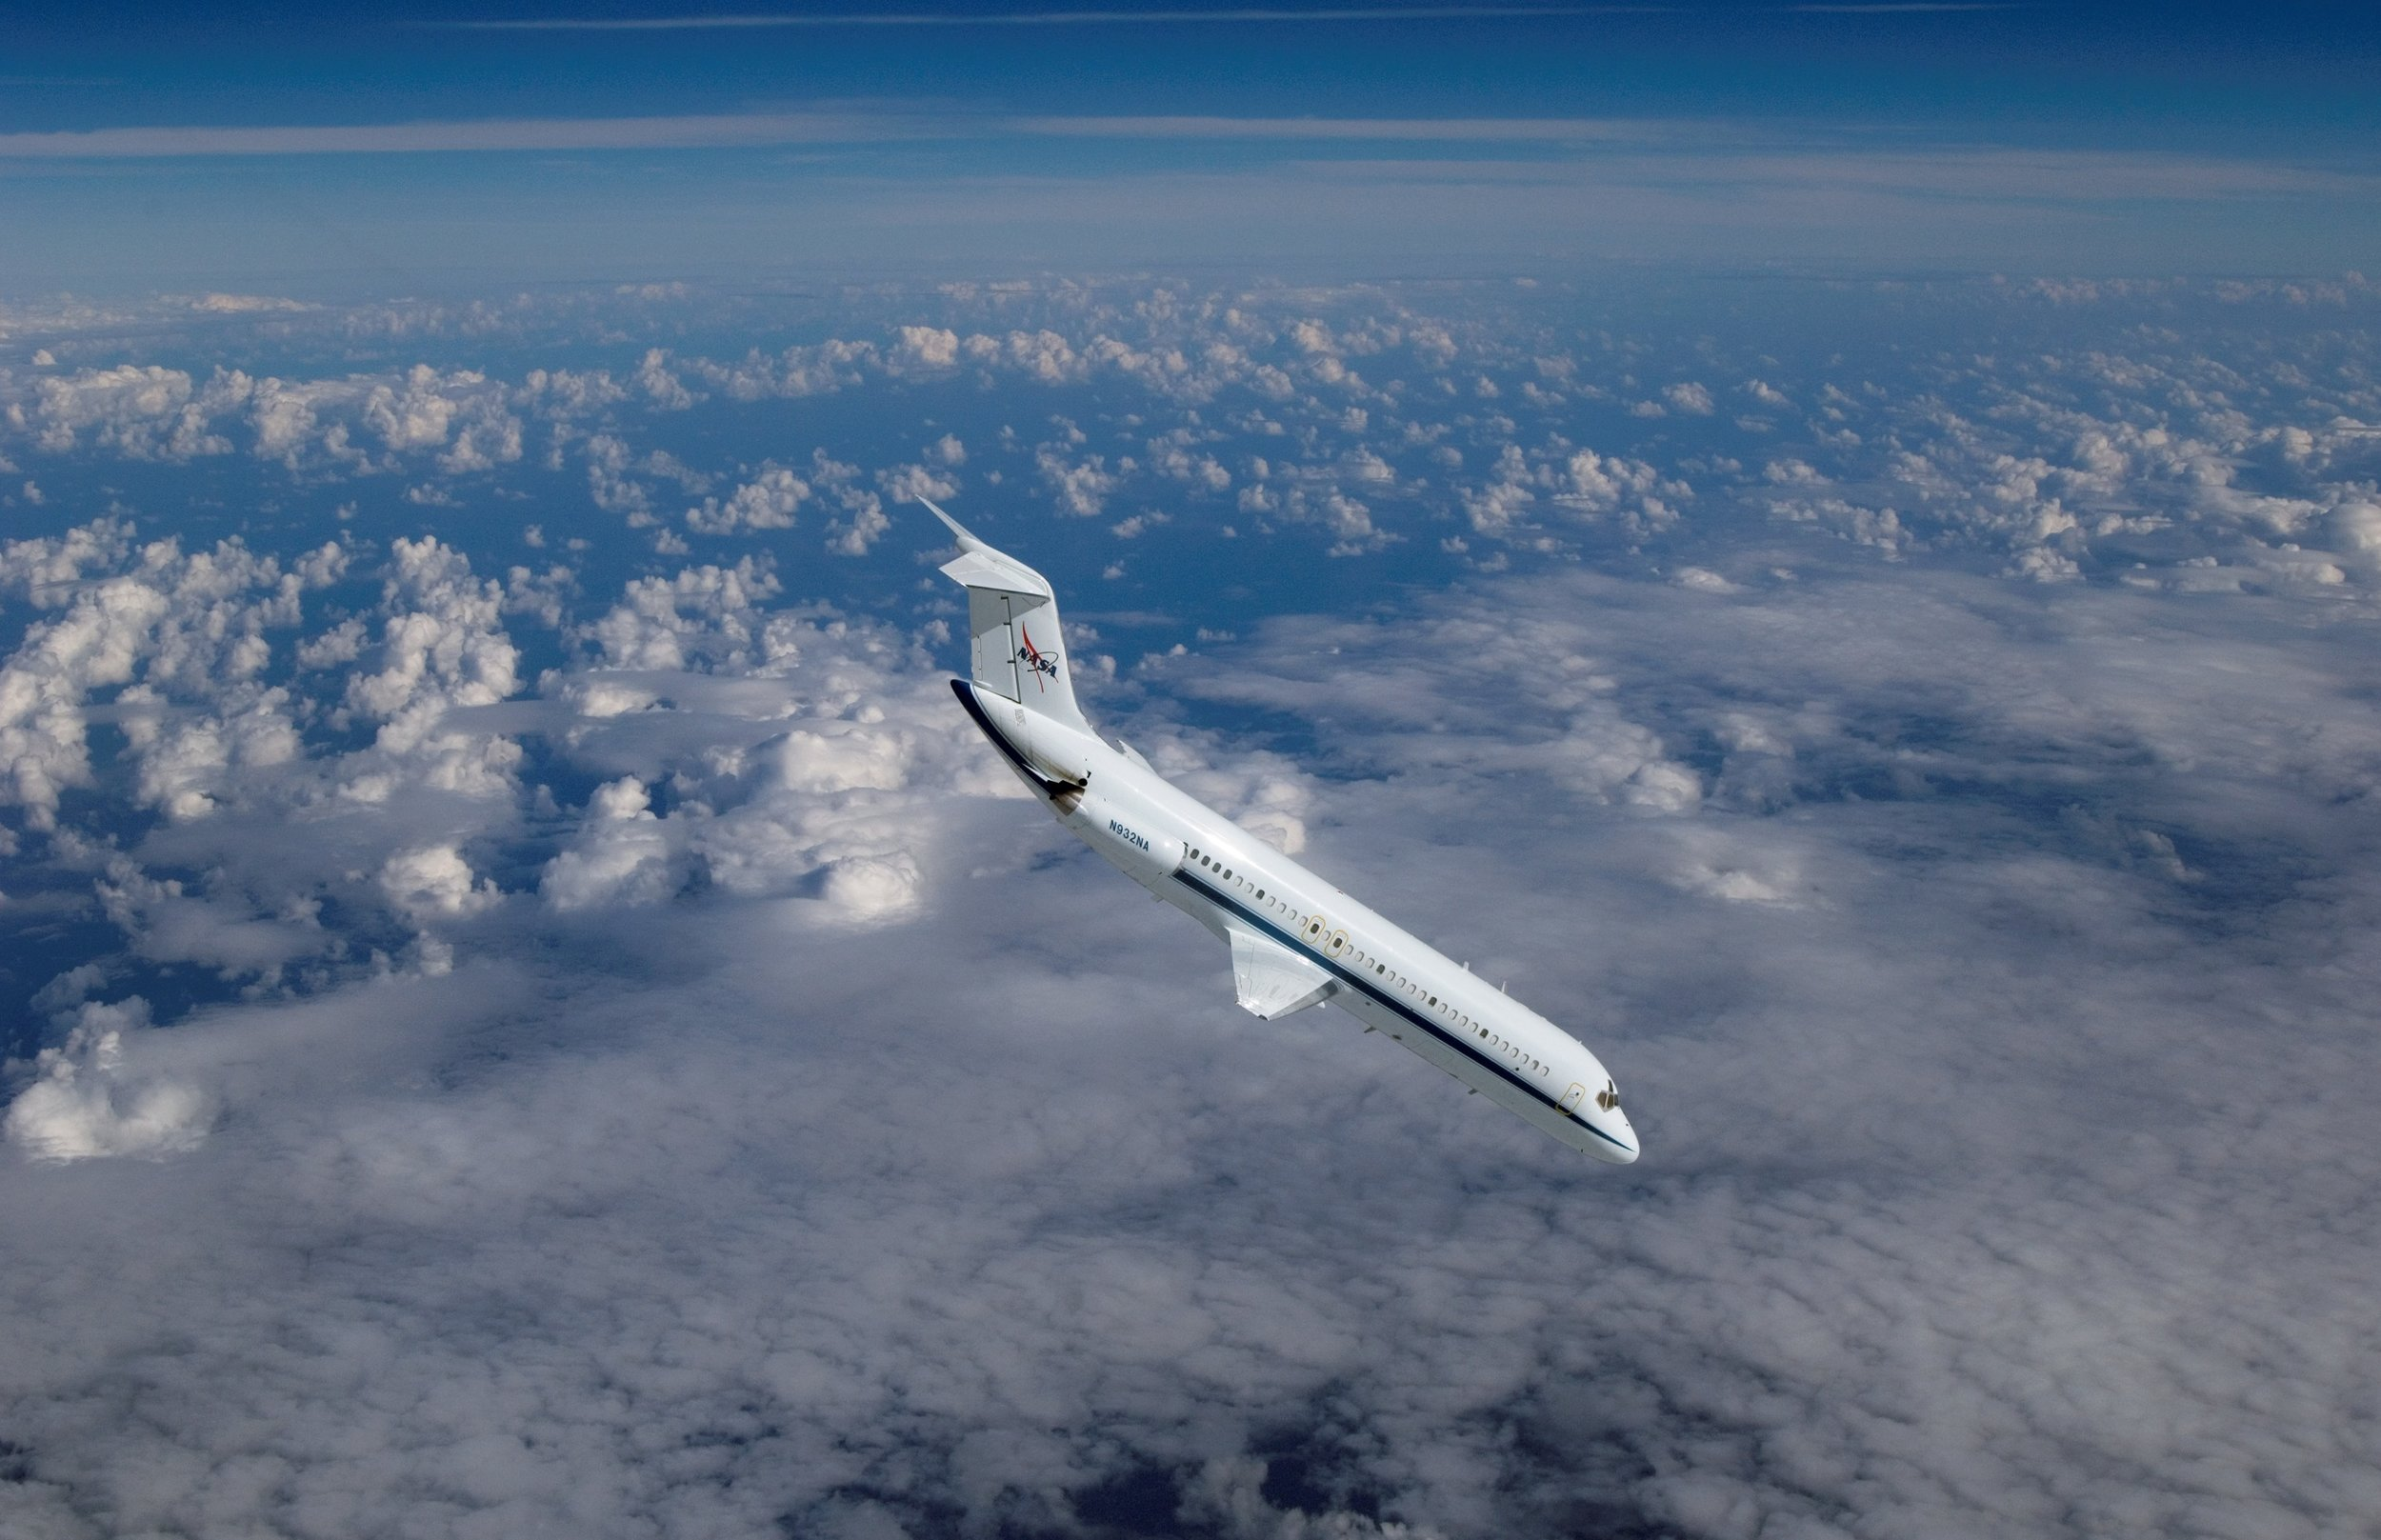 A NASA DC-9 reduced-gravity aircraft is featured in this image during a parabolic flight photographed from a T-38 aircraft. Image credit: NASA